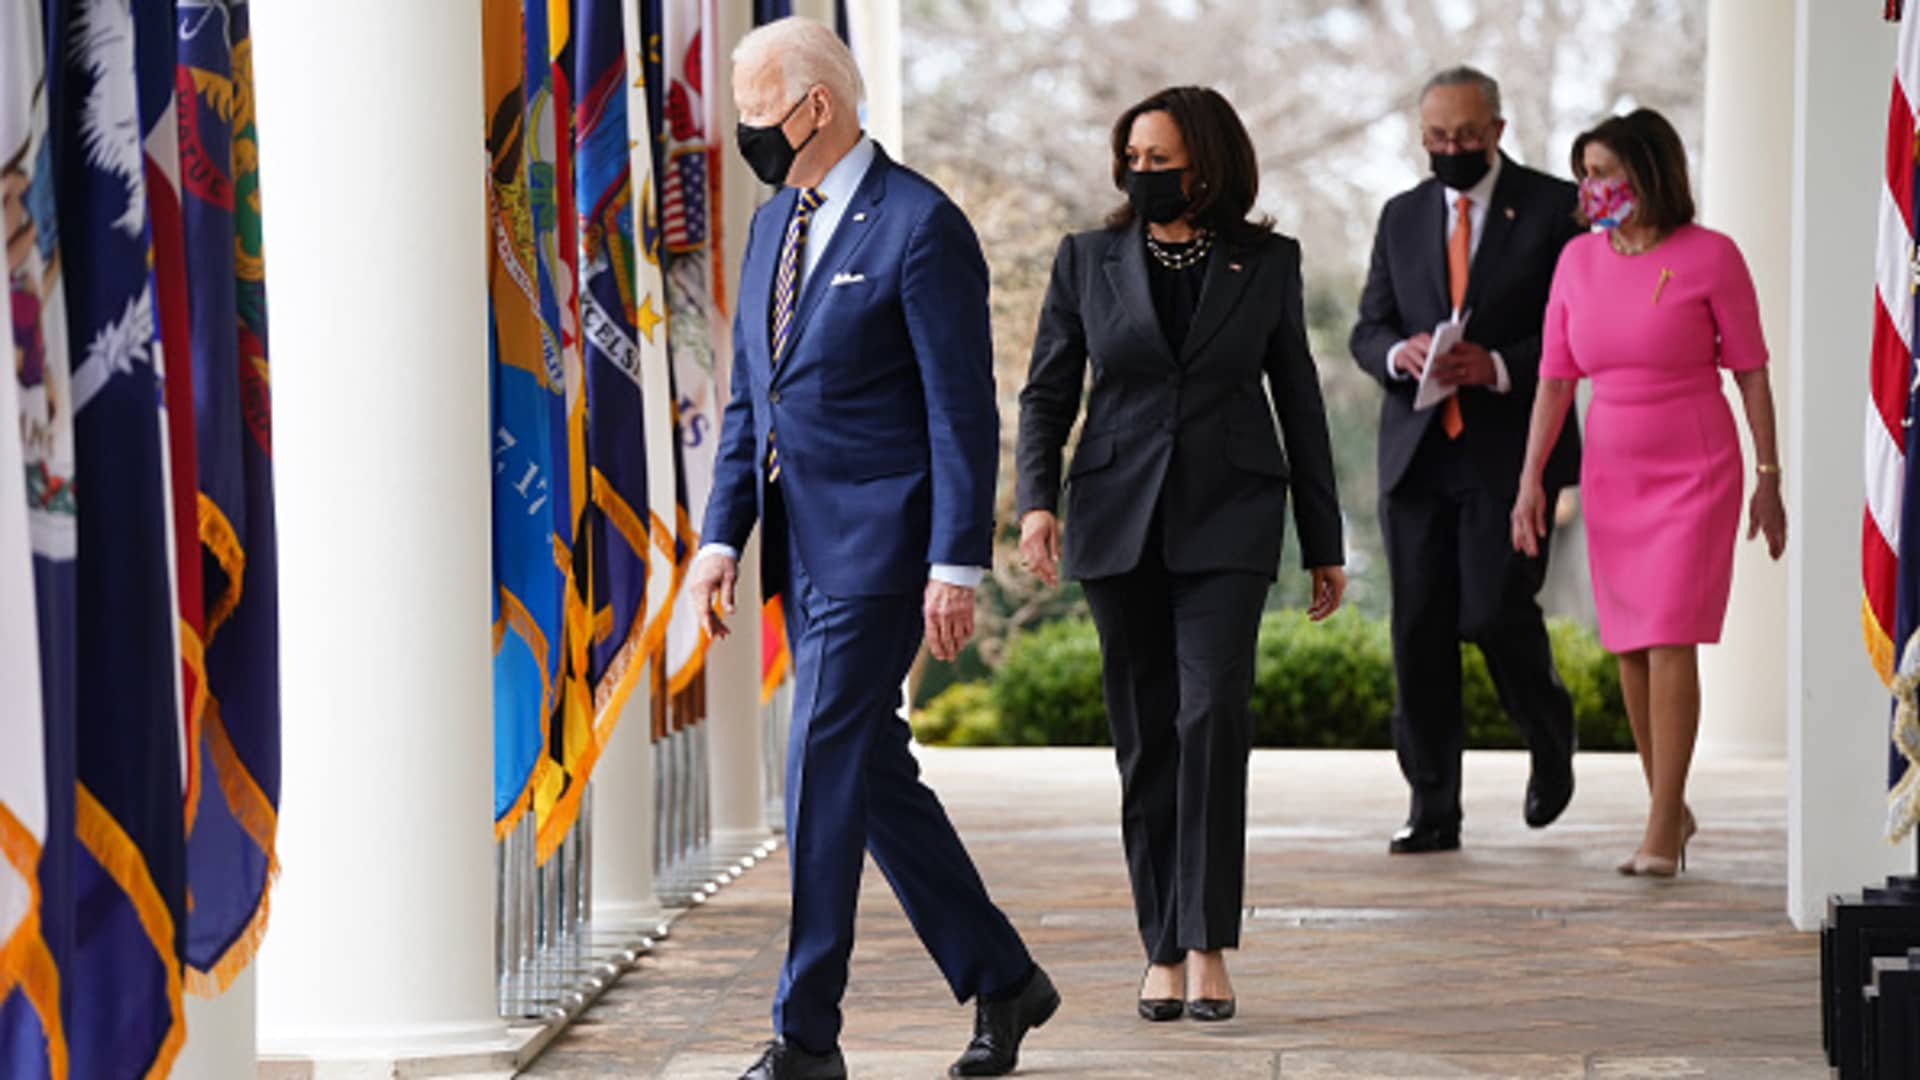 President Joe Biden, from left, U.S. Vice President Kamala Harris, Senate Majority Leader Chuck Schumer, a Democrat from New York, and U.S. House Speaker Nancy Pelosi, a Democrat from California, wear protective masks while arriving to an event in the Rose Garden of the White House in Washington, D.C., on Friday, March 12, 2021.